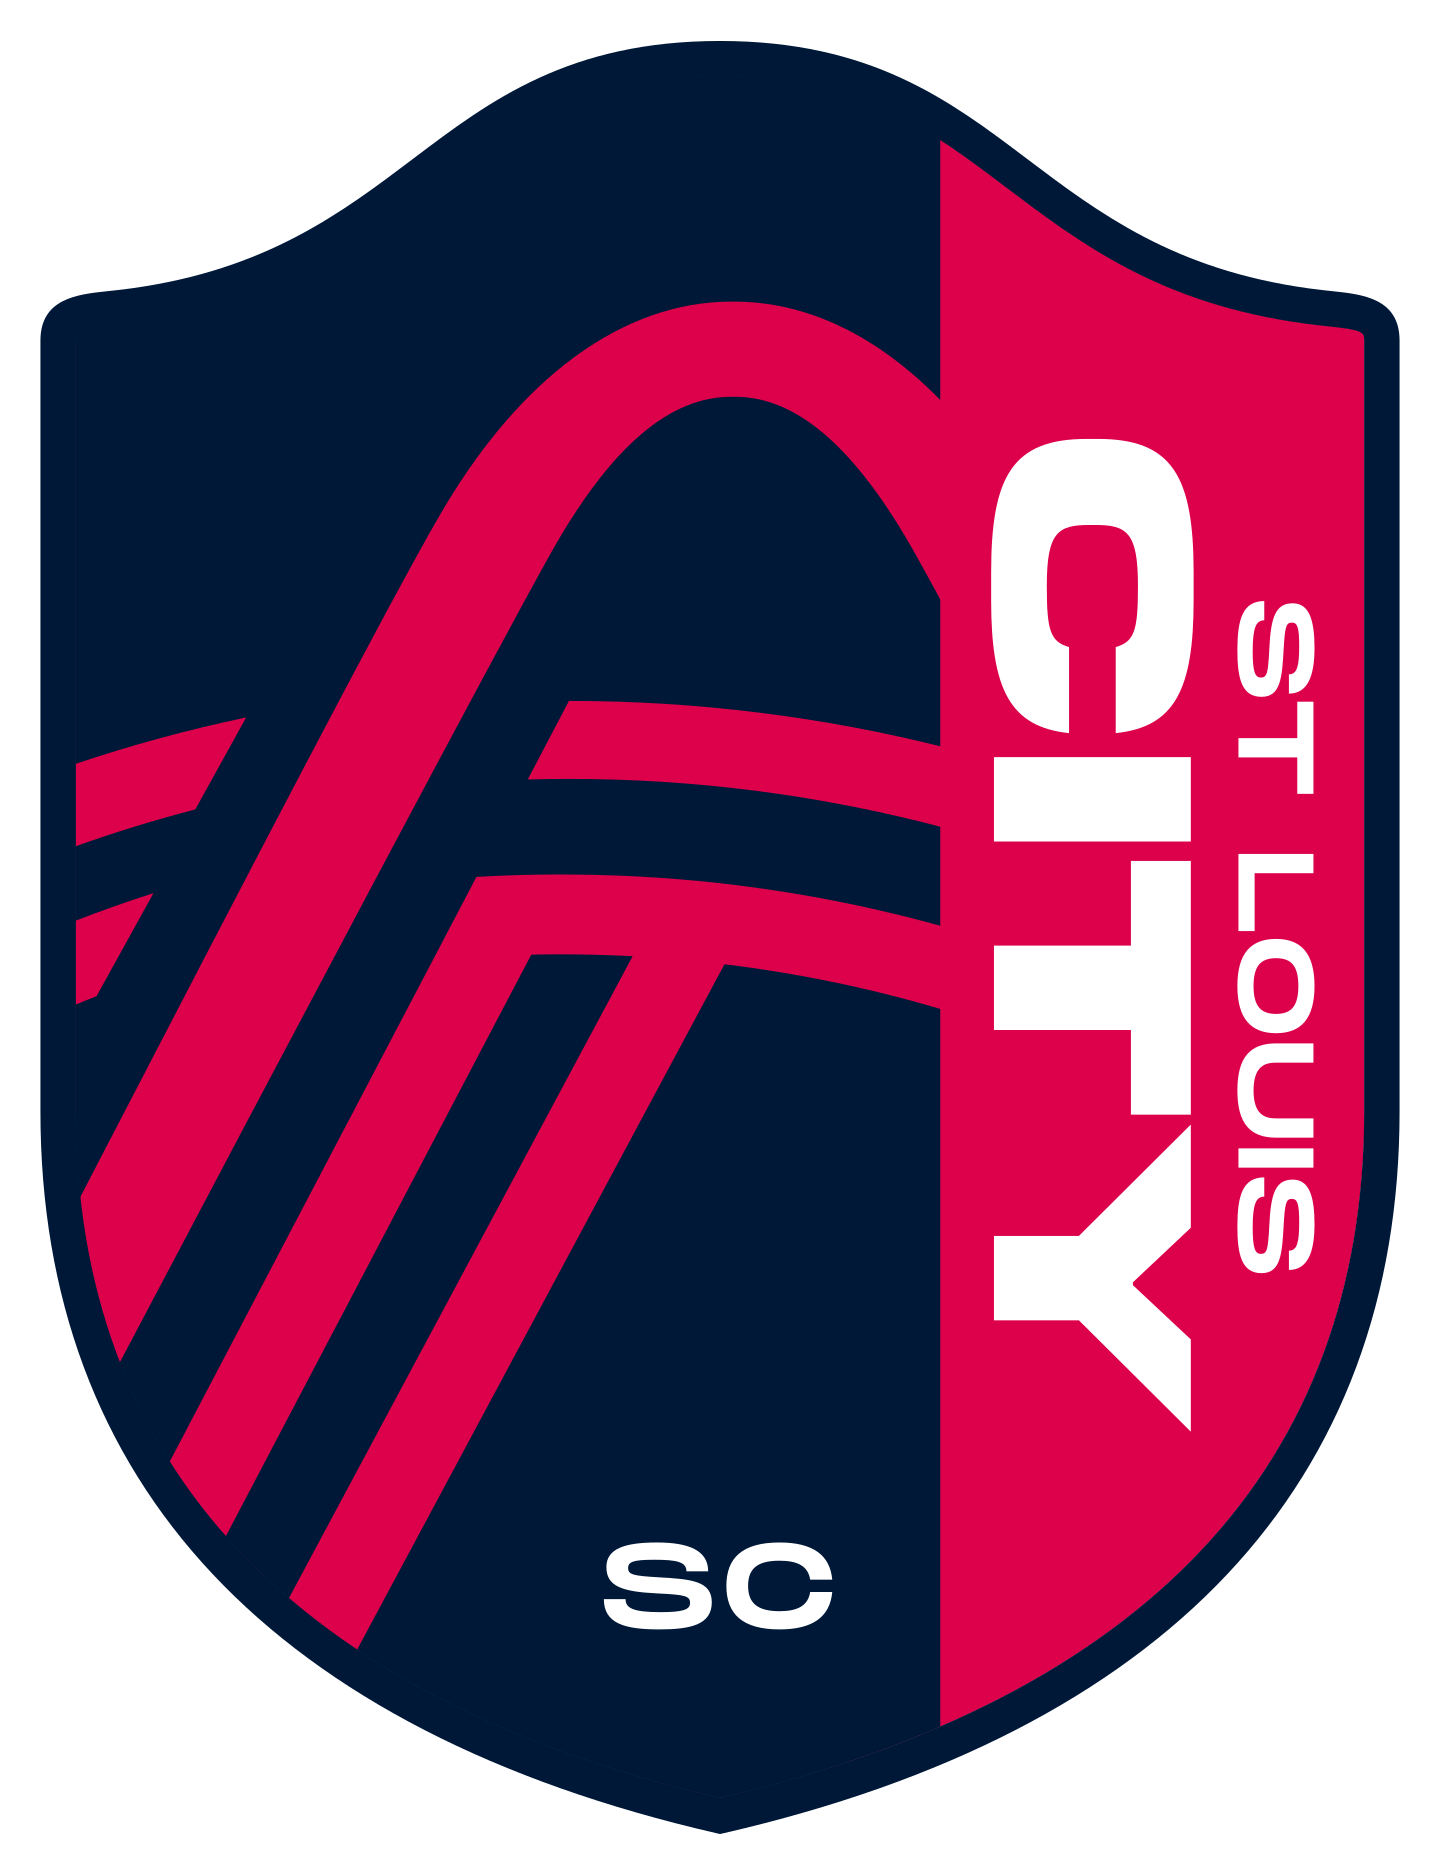 st louis city sc logo 2 - St. Louis City SC Logo